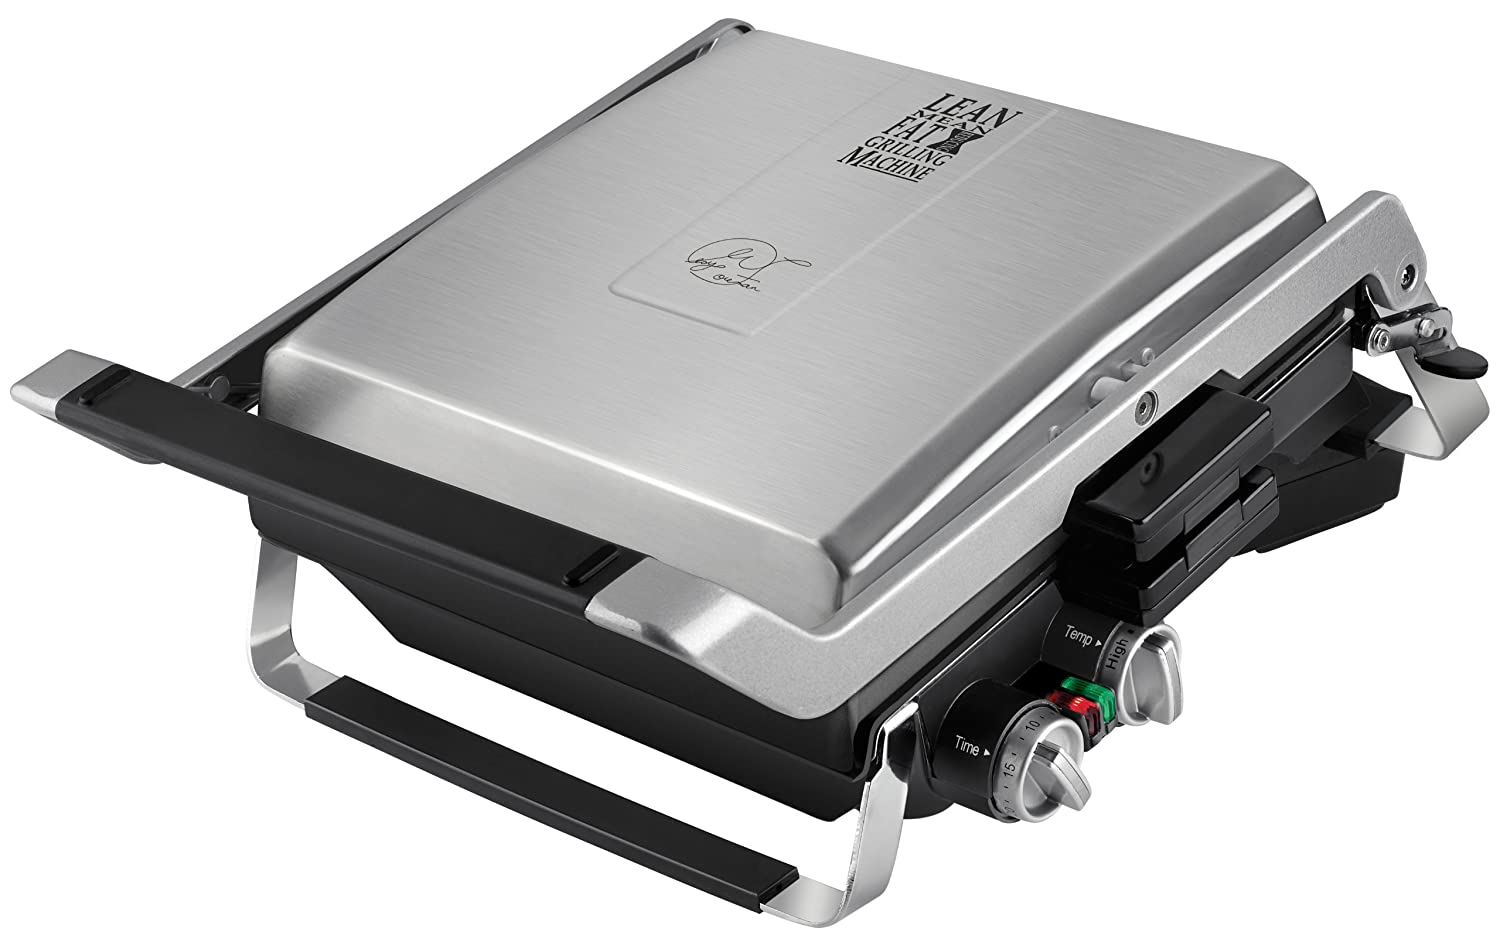 George Foreman GRP100 The Next Grilleration G100 Stainless-Steel Nonstick Countertop Grill